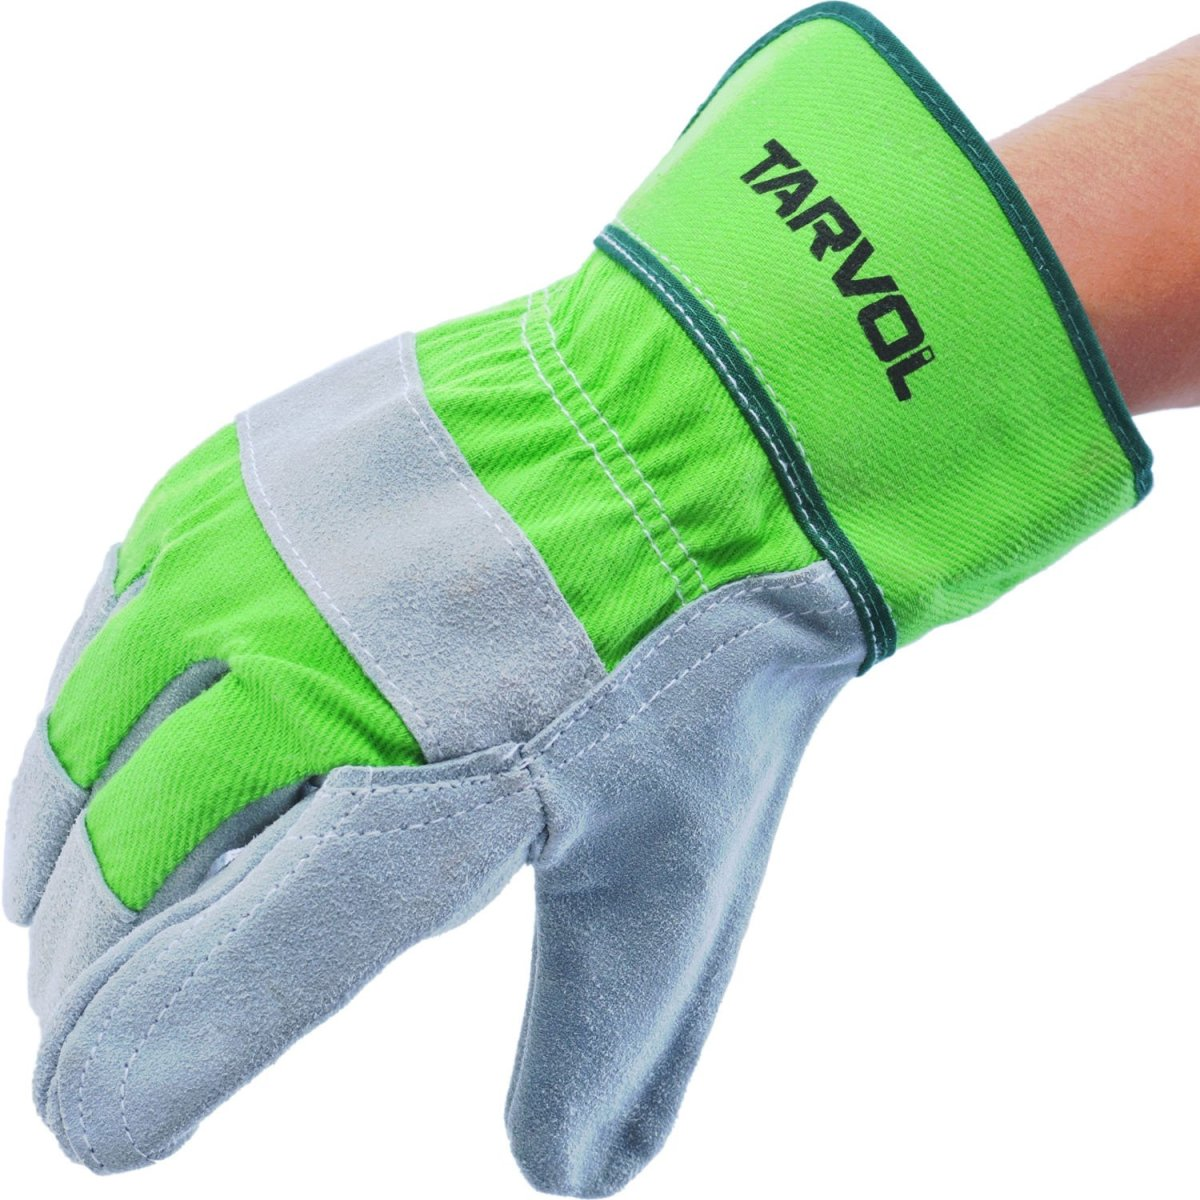 Leather Work Garden Gloves Heavy Duty Industrial Safety Gardening Men Women NEW